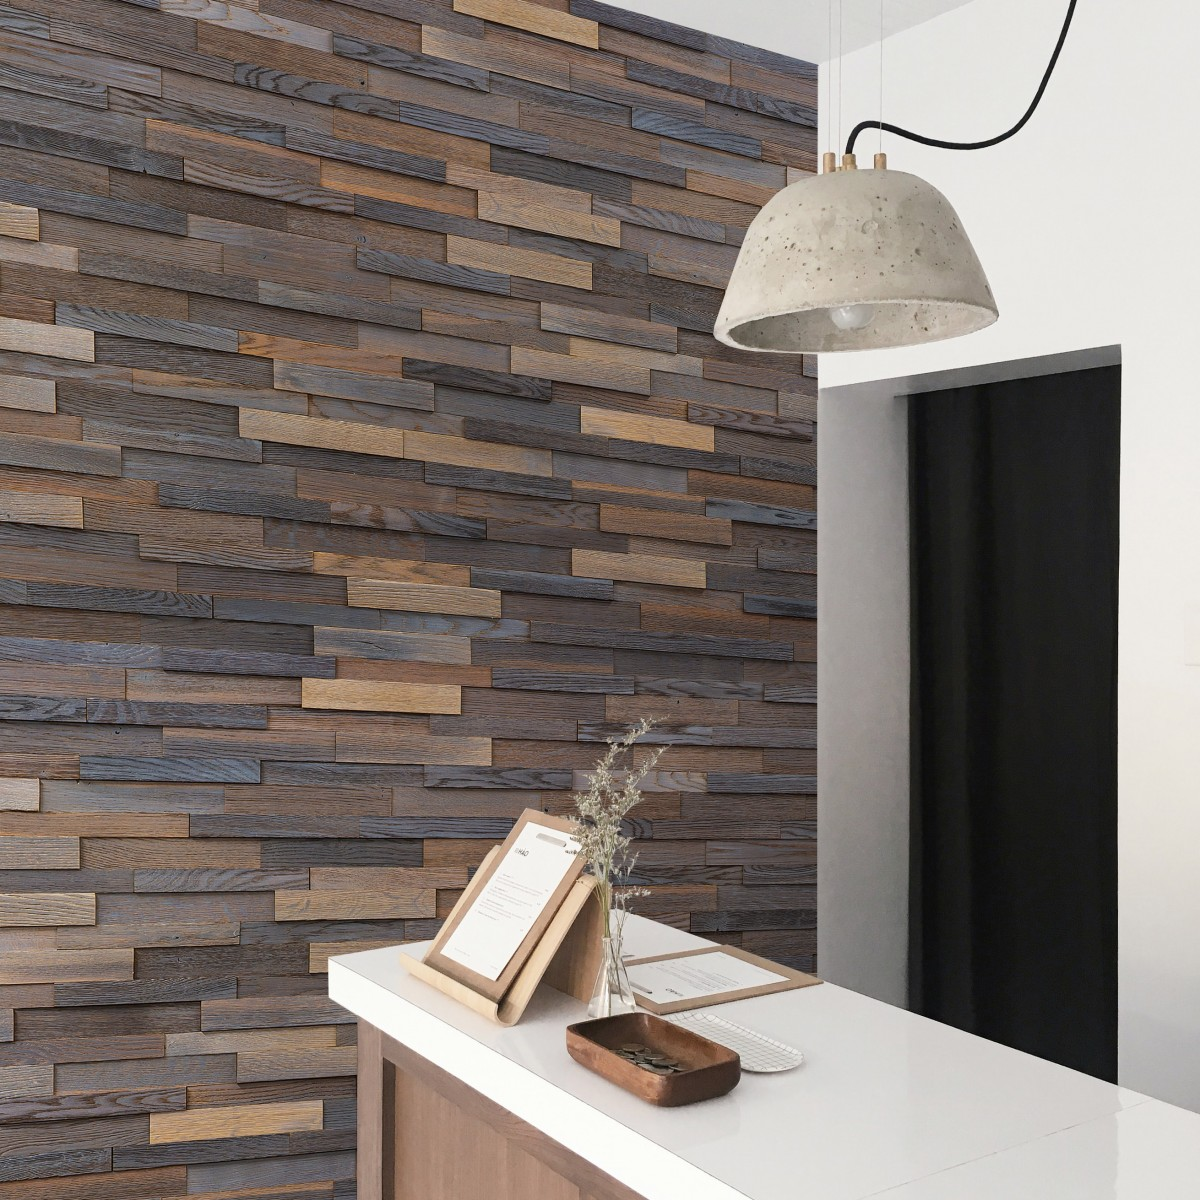 Panouri decorative din lemn de stejar, Brick Timeless